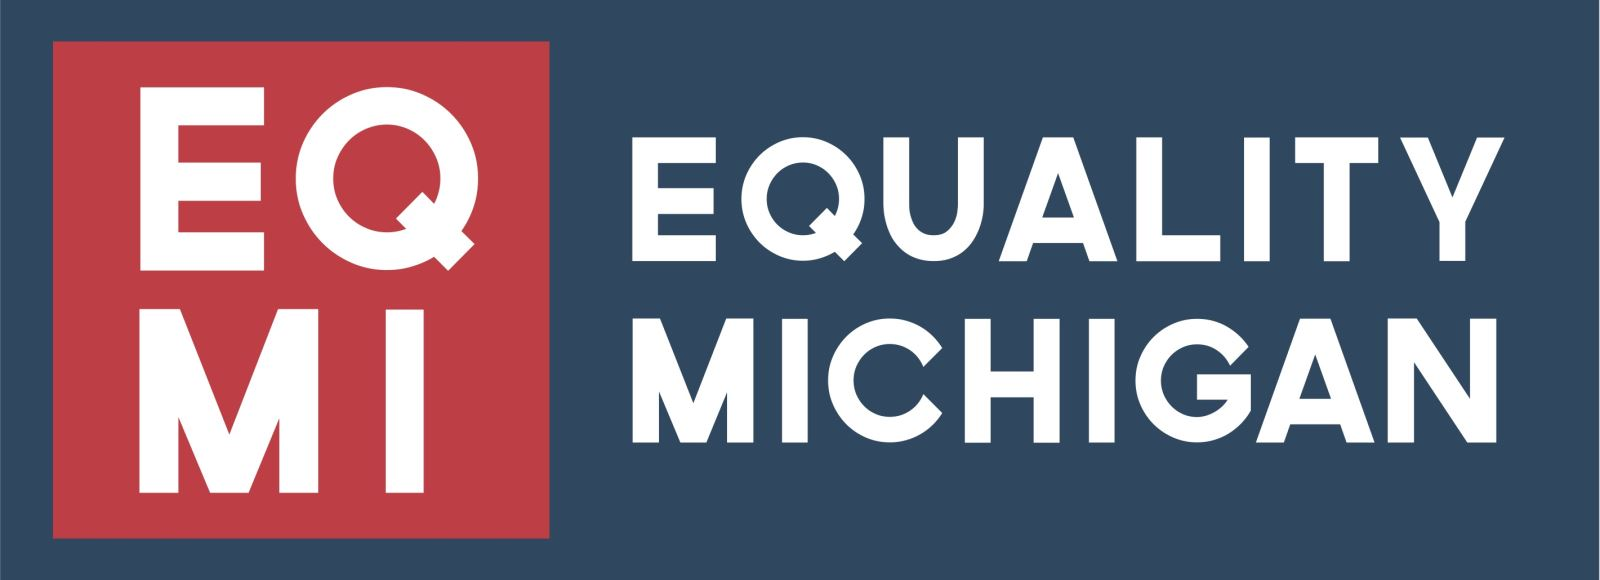 Equality Michigan Action Network